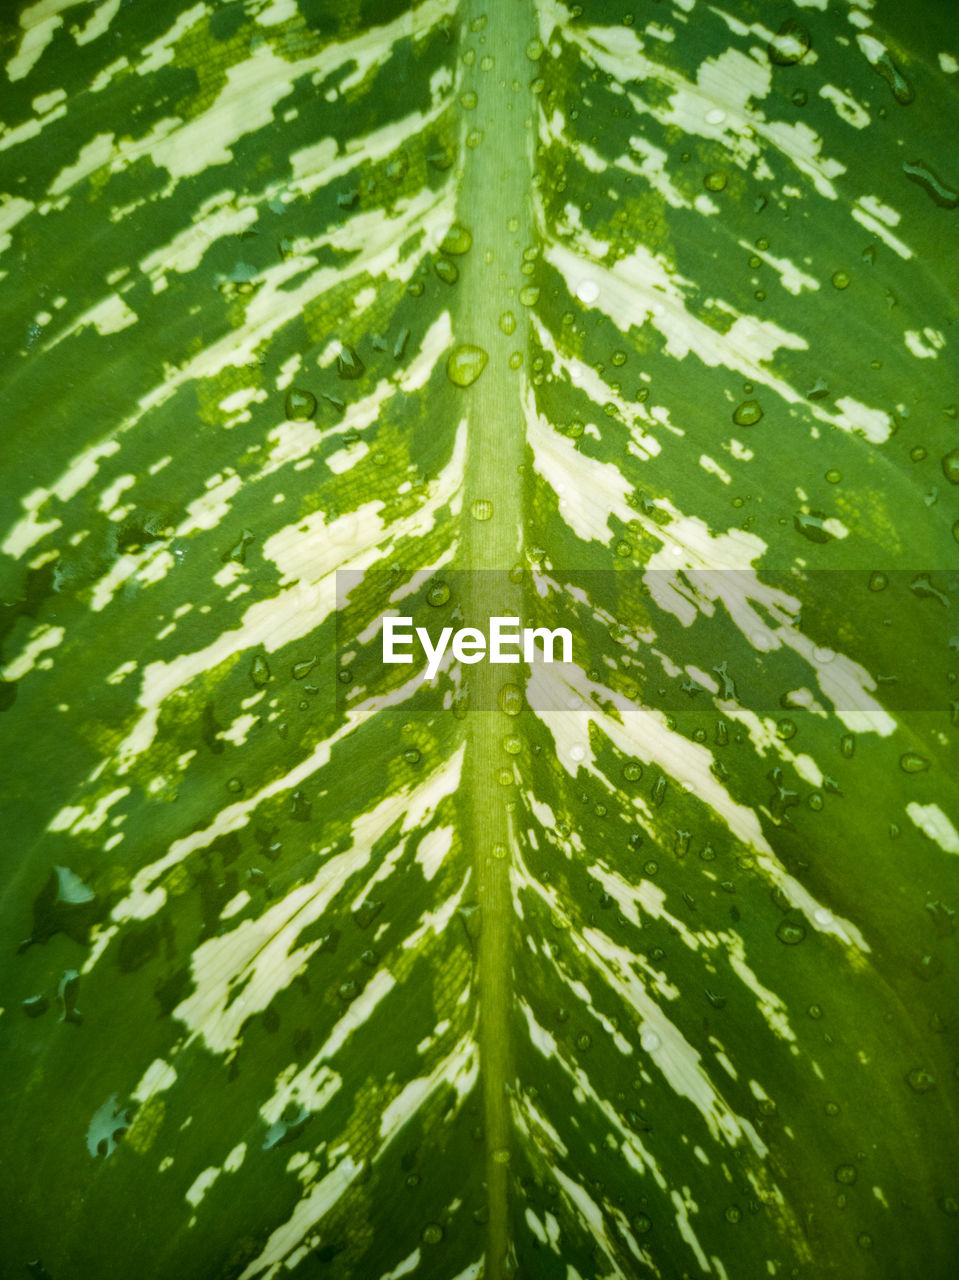 green color, leaf, plant part, plant, growth, nature, full frame, no people, backgrounds, beauty in nature, close-up, day, freshness, water, wet, drop, outdoors, natural pattern, pattern, palm leaf, rain, leaves, purity, dew